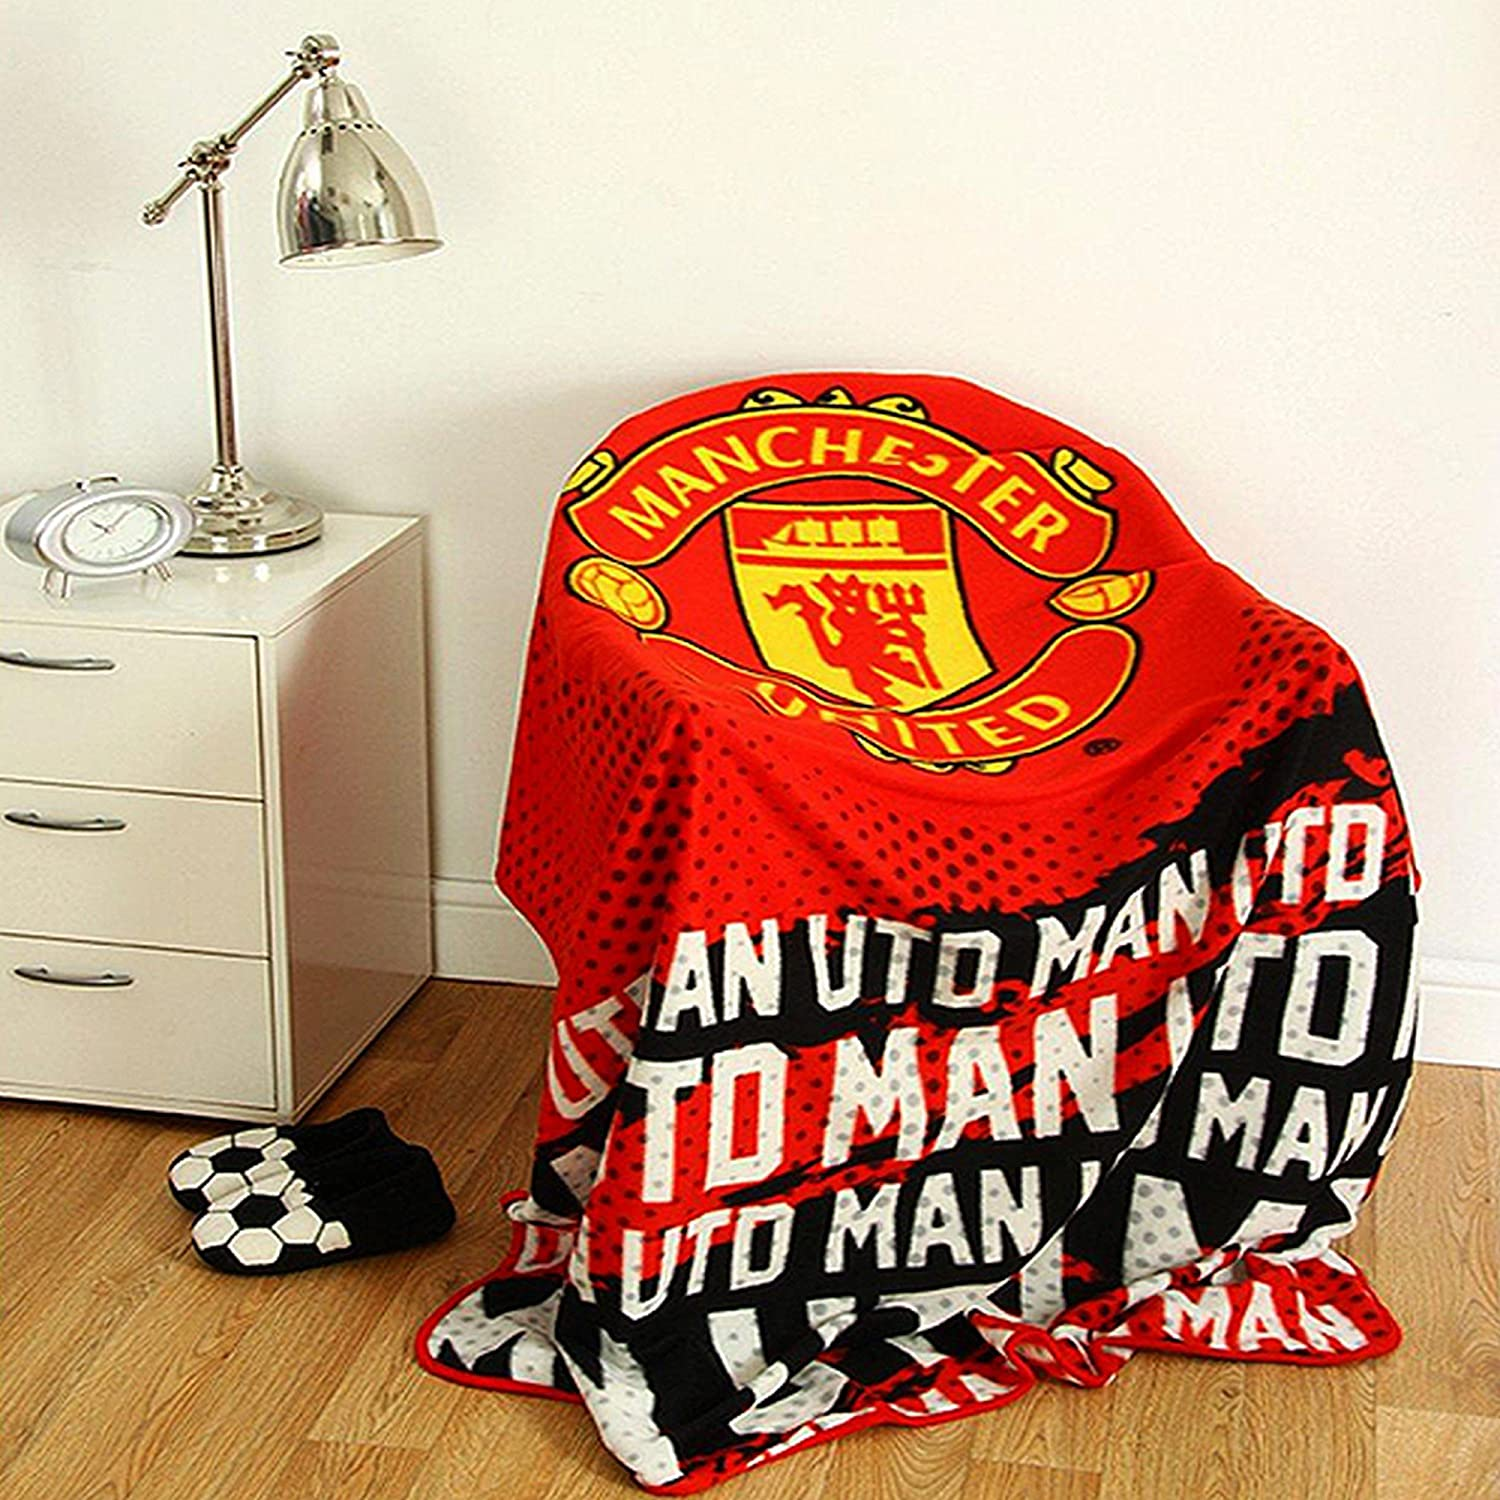 Stupendous Manchester United Fc Official Pulse Design Towel One Size Creativecarmelina Interior Chair Design Creativecarmelinacom